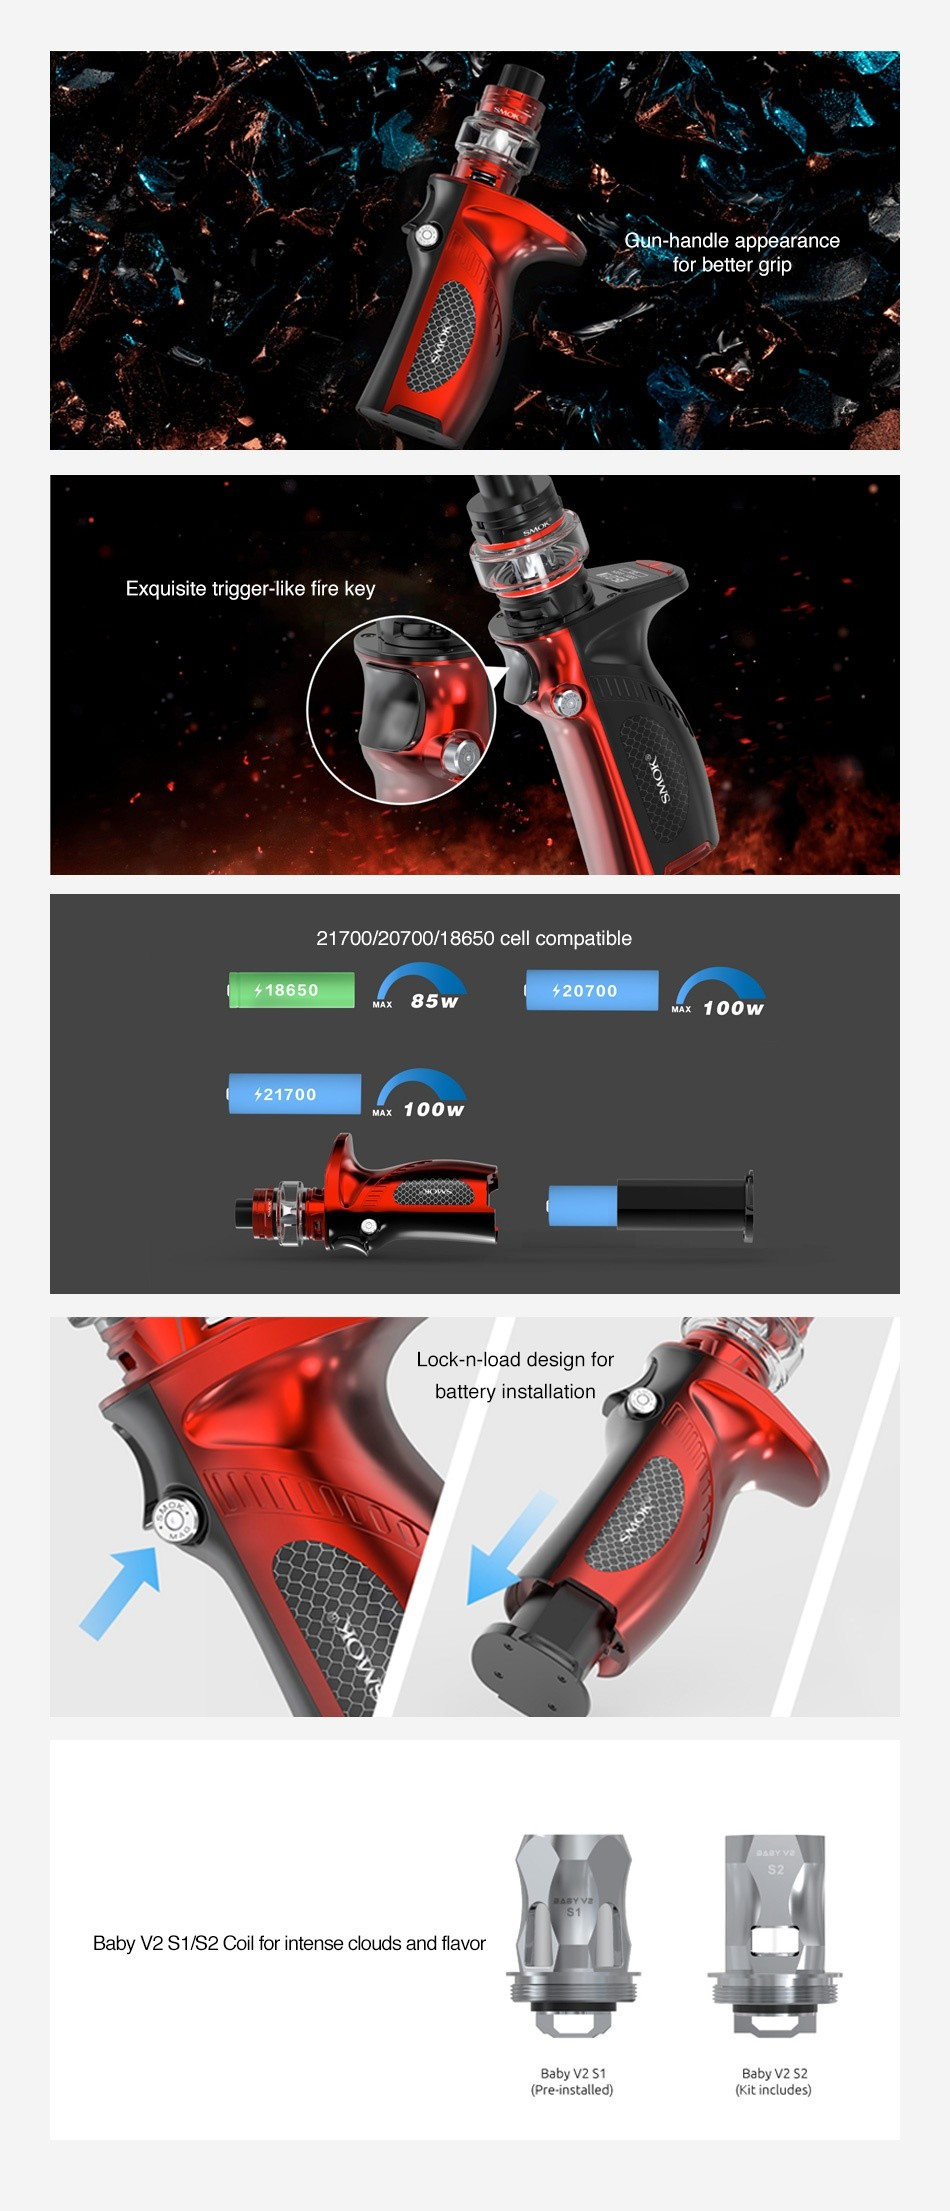 SMOK Mag Grip 100W TC Kit with TFV8 Baby V2 eun handle appearance for better grip Exquisite trigger like fire key 21700 20700 18650 cell compatible 18650 85 20700 21700 MAx 100w Lock n load design for battery installation o Baby v2 S1 S2 Coil for intense clouds and flavor Baby V2 S2